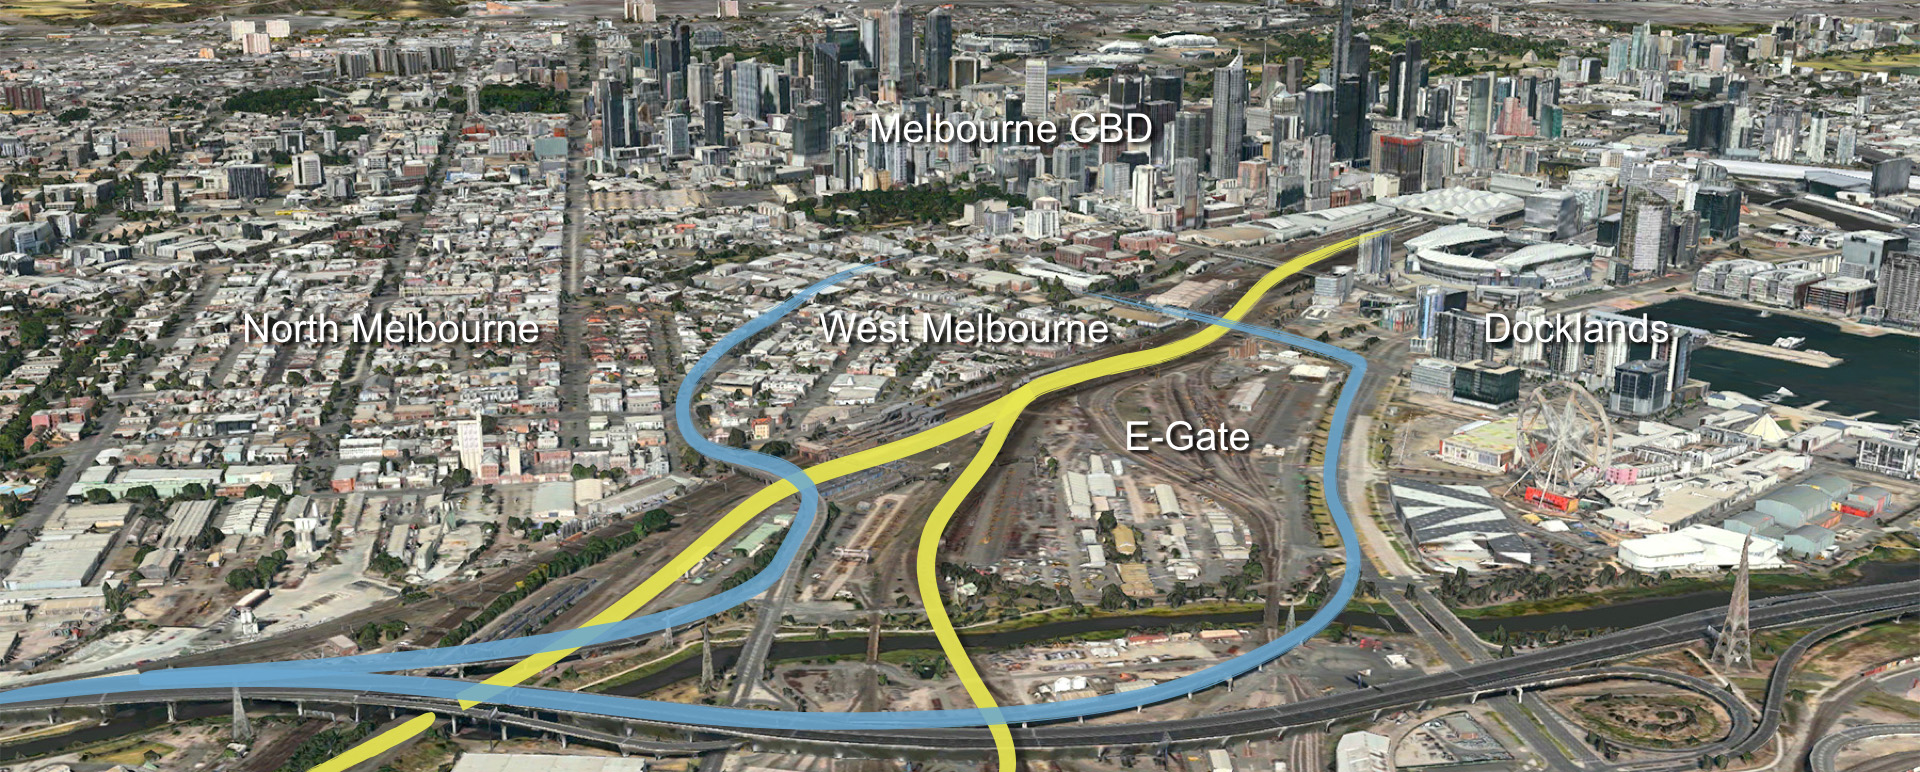 The existing access ways about the E-Gate site. The Blue lines represent road traffic coming in from the north off Citylink, the Yellow lines are  regional and interstate trains that pass the site everyday as they arrive in the Southern Cross Train Station.